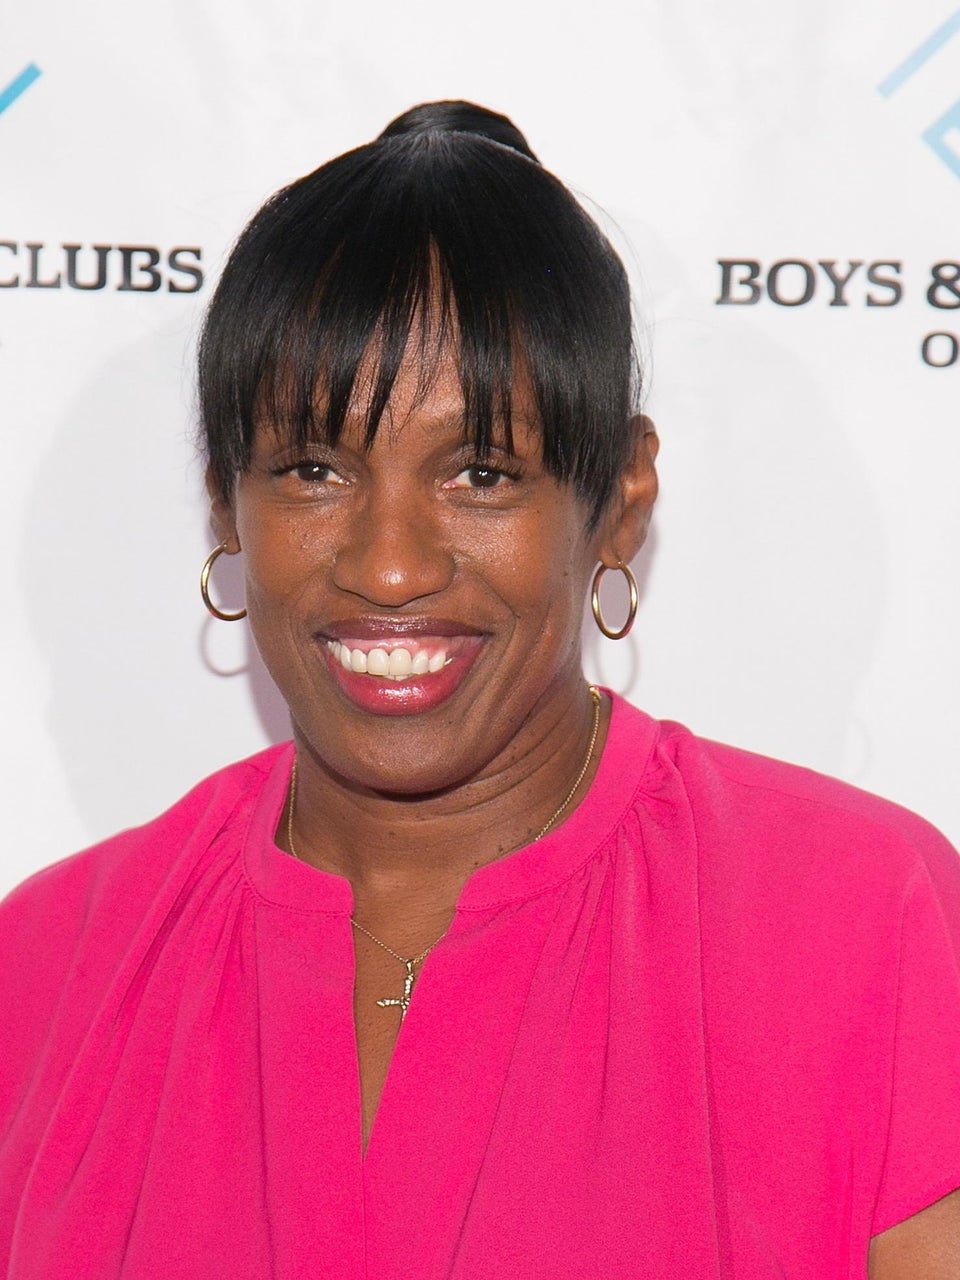 Olympic Gold Medalist, Jackie Joyner-Kersee Reflects on Prince